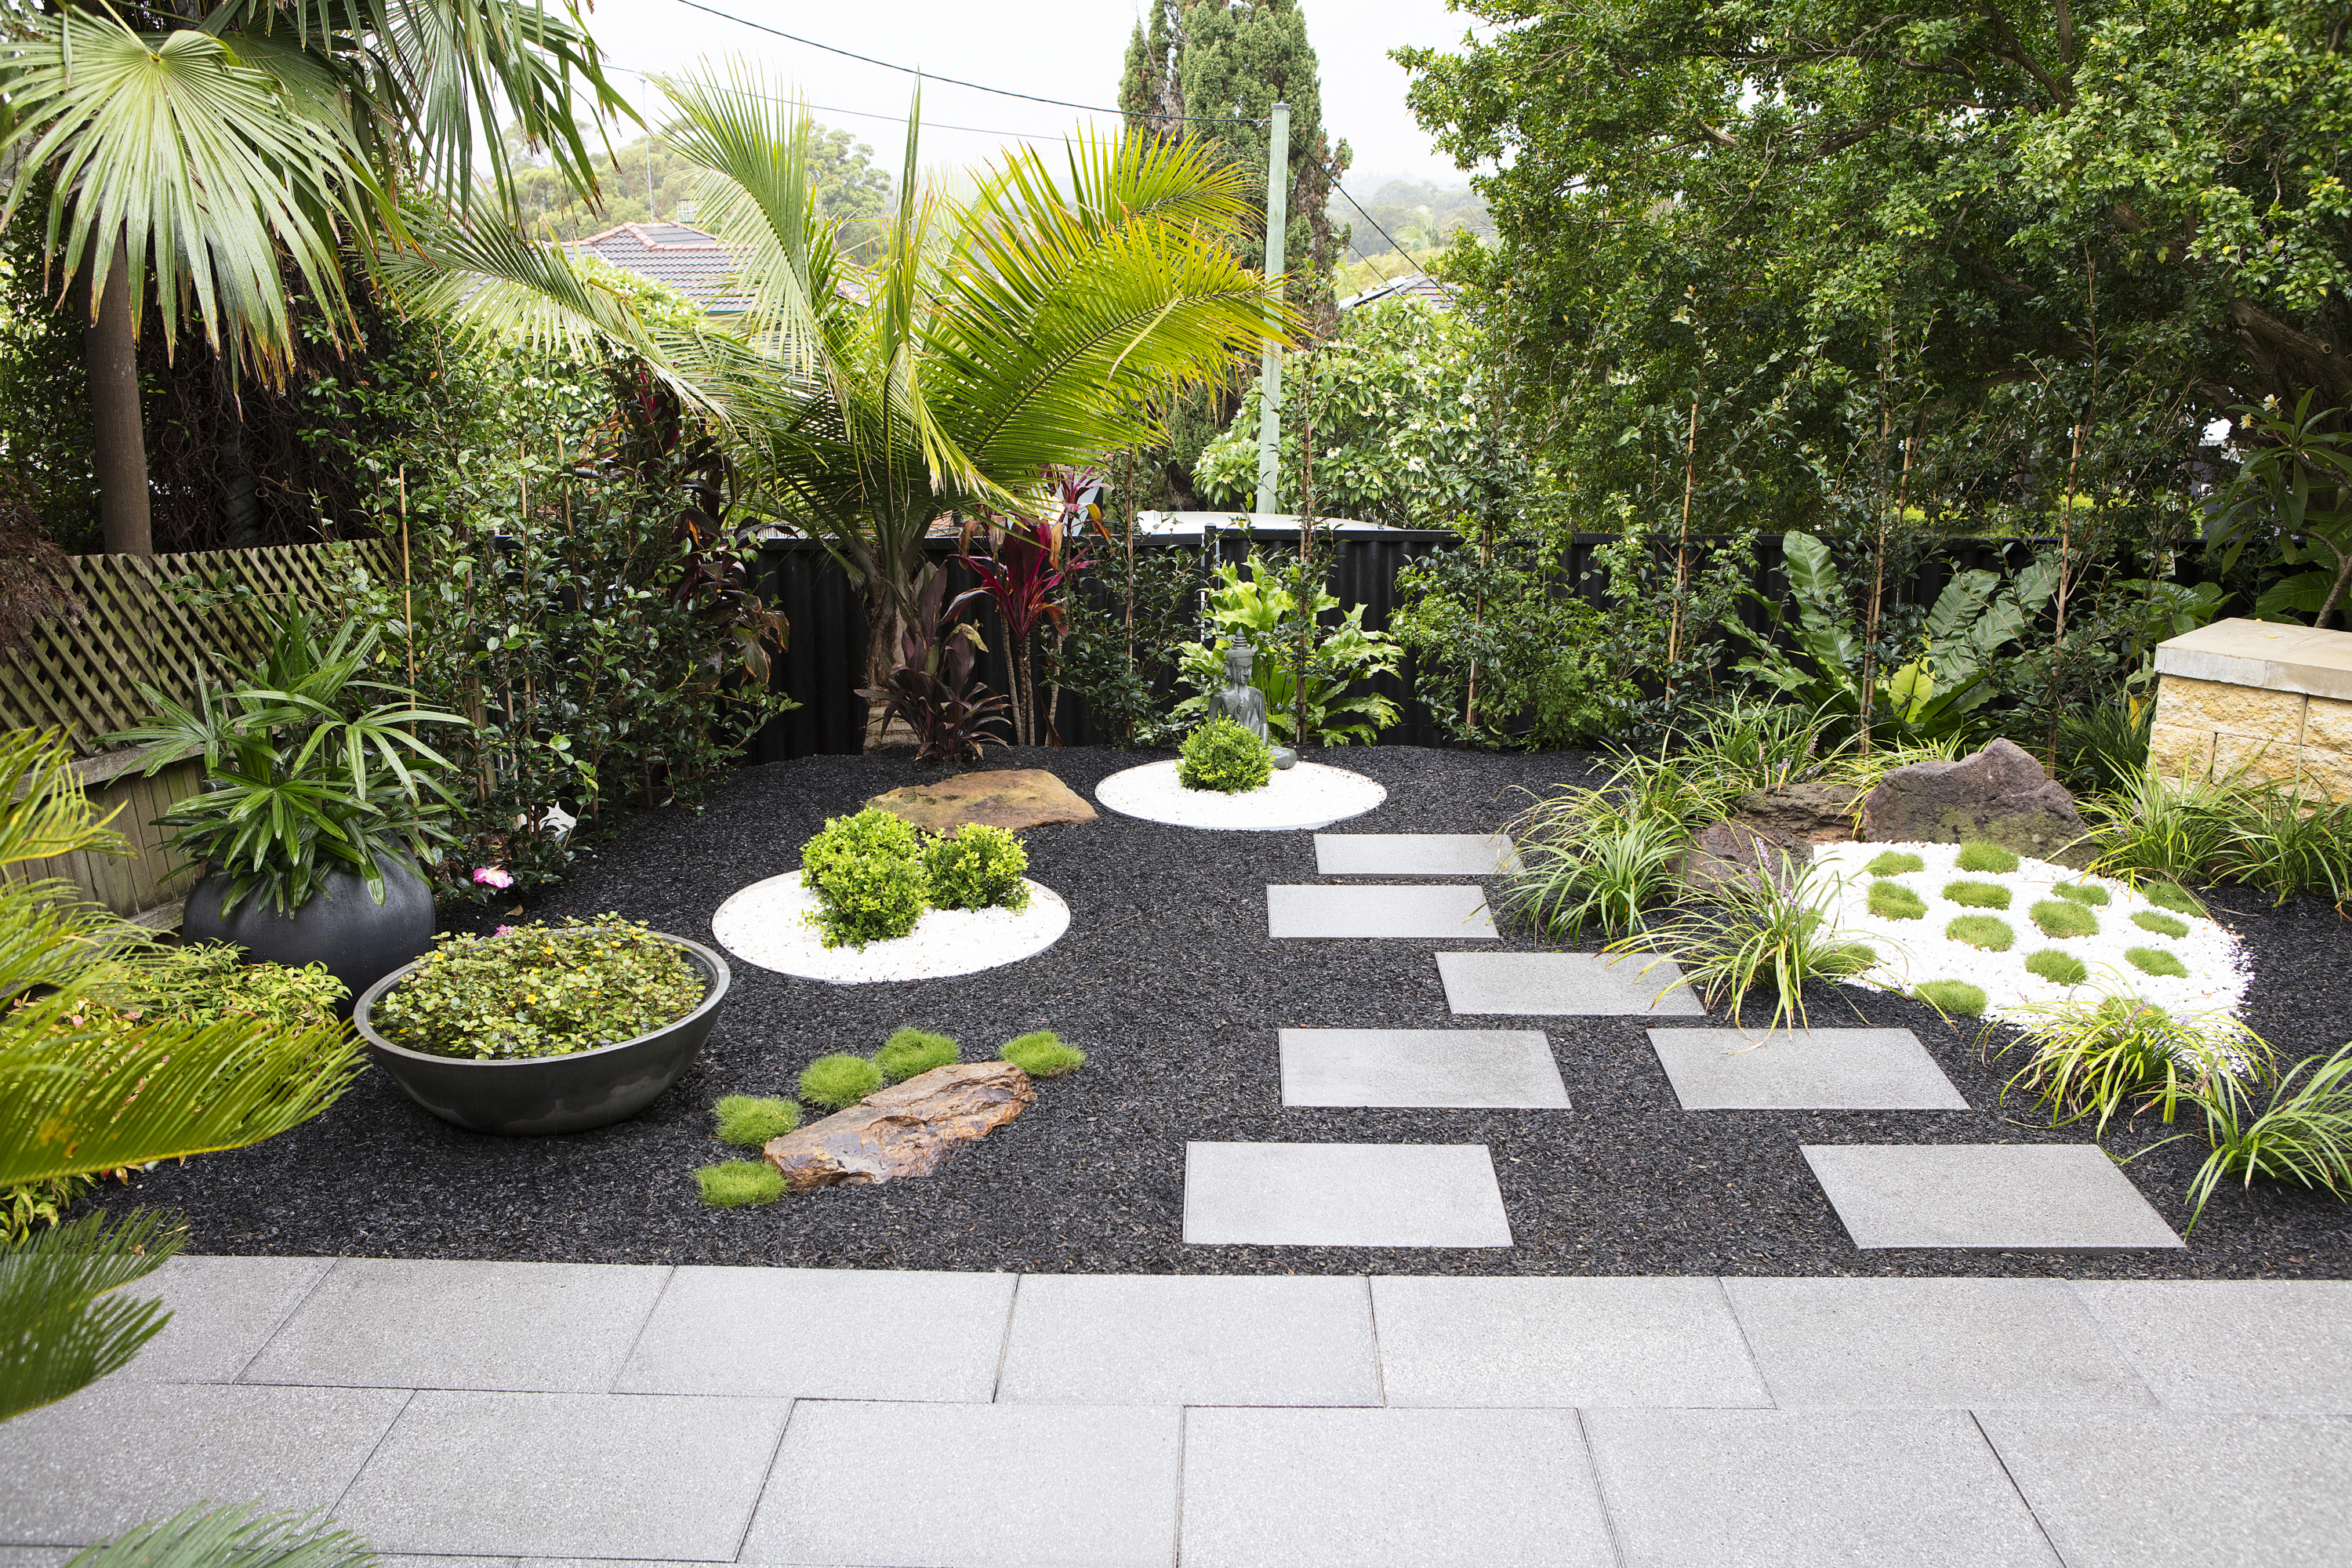 Aussie backyards inspired by overseas holiday spots - The ... on Backyard Landscape  id=82822